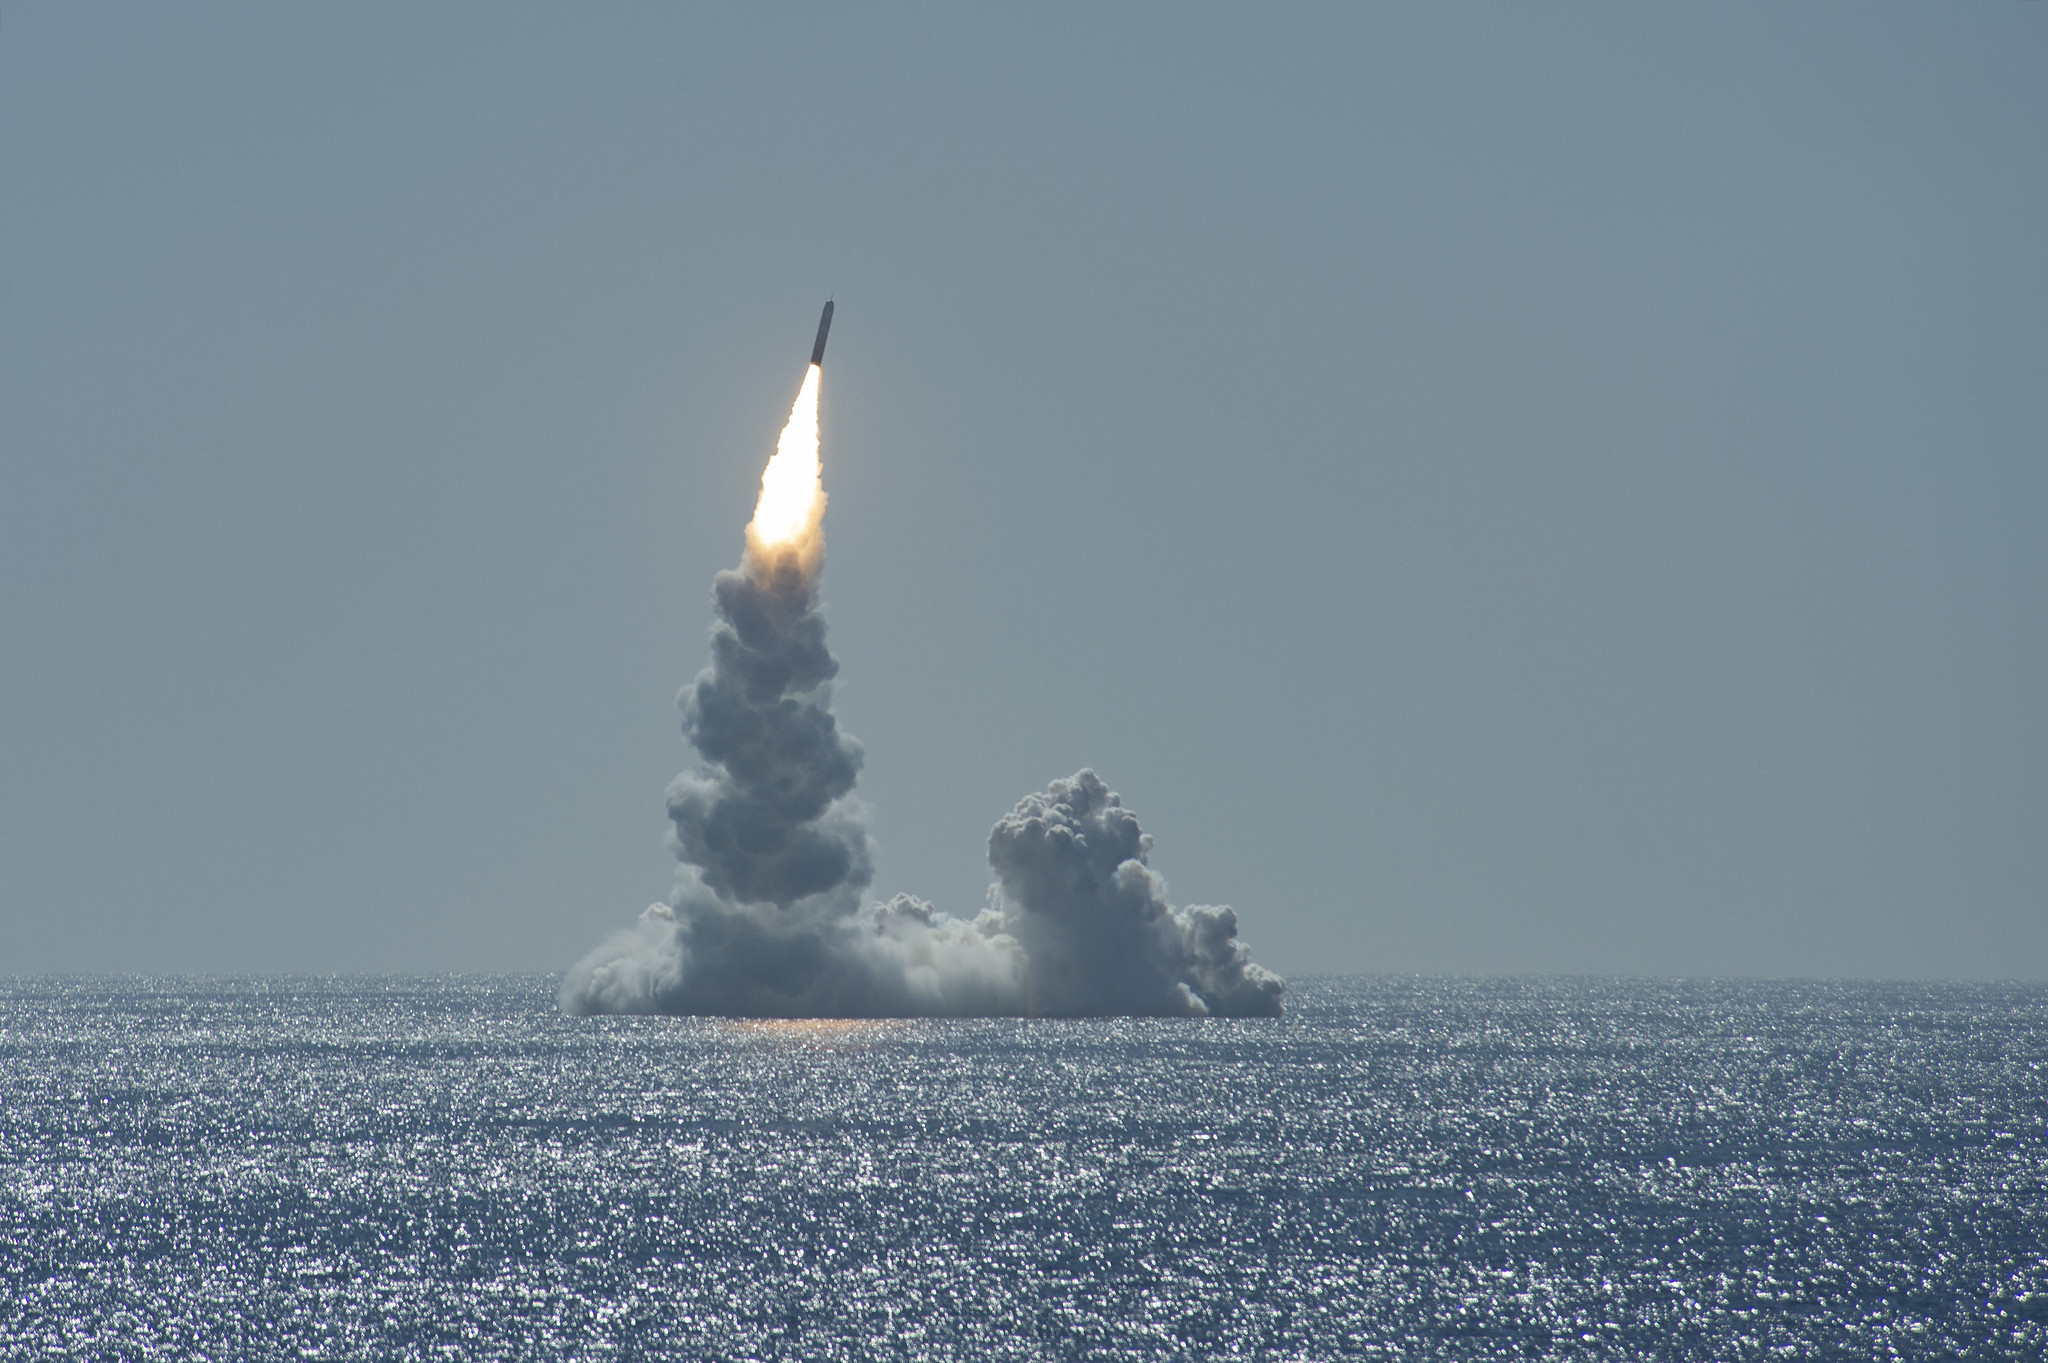 An unarmed Trident II missile launches from Ohio-class ballistic missile submarine Maine off the coast of San Diego, Calif., on Feb. 12, 2020. (MC2 Thomas Gooley/U.S. Navy)